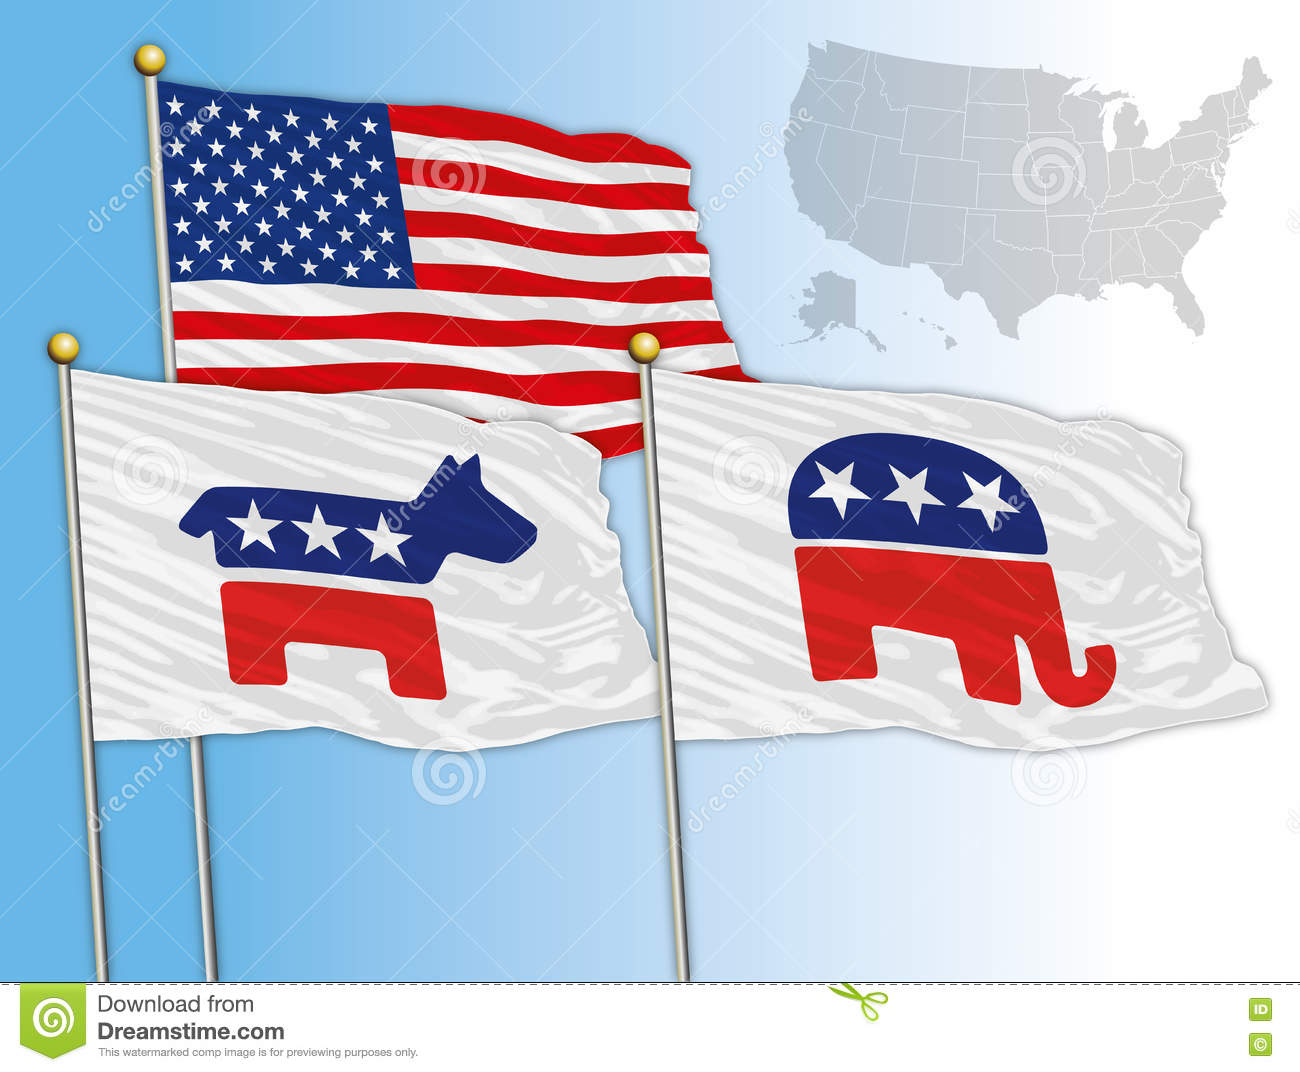 UNITED STATES - YEAR 2016 - Flags With Symbols Of The Democratic And ...